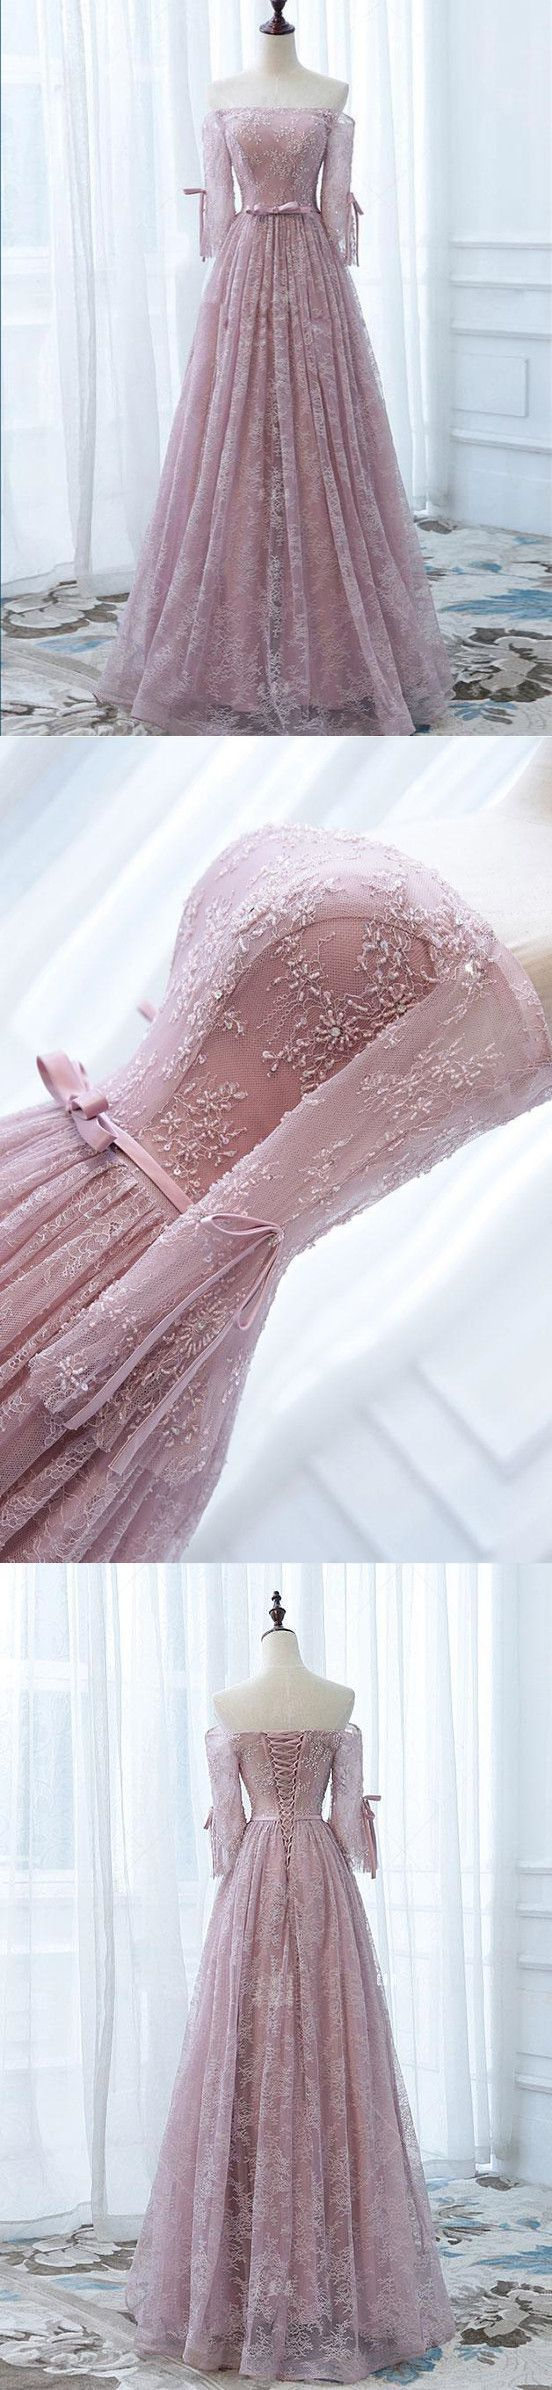 A-line, Off the Shoulder, Pink Tulle & Lace Evening Dress